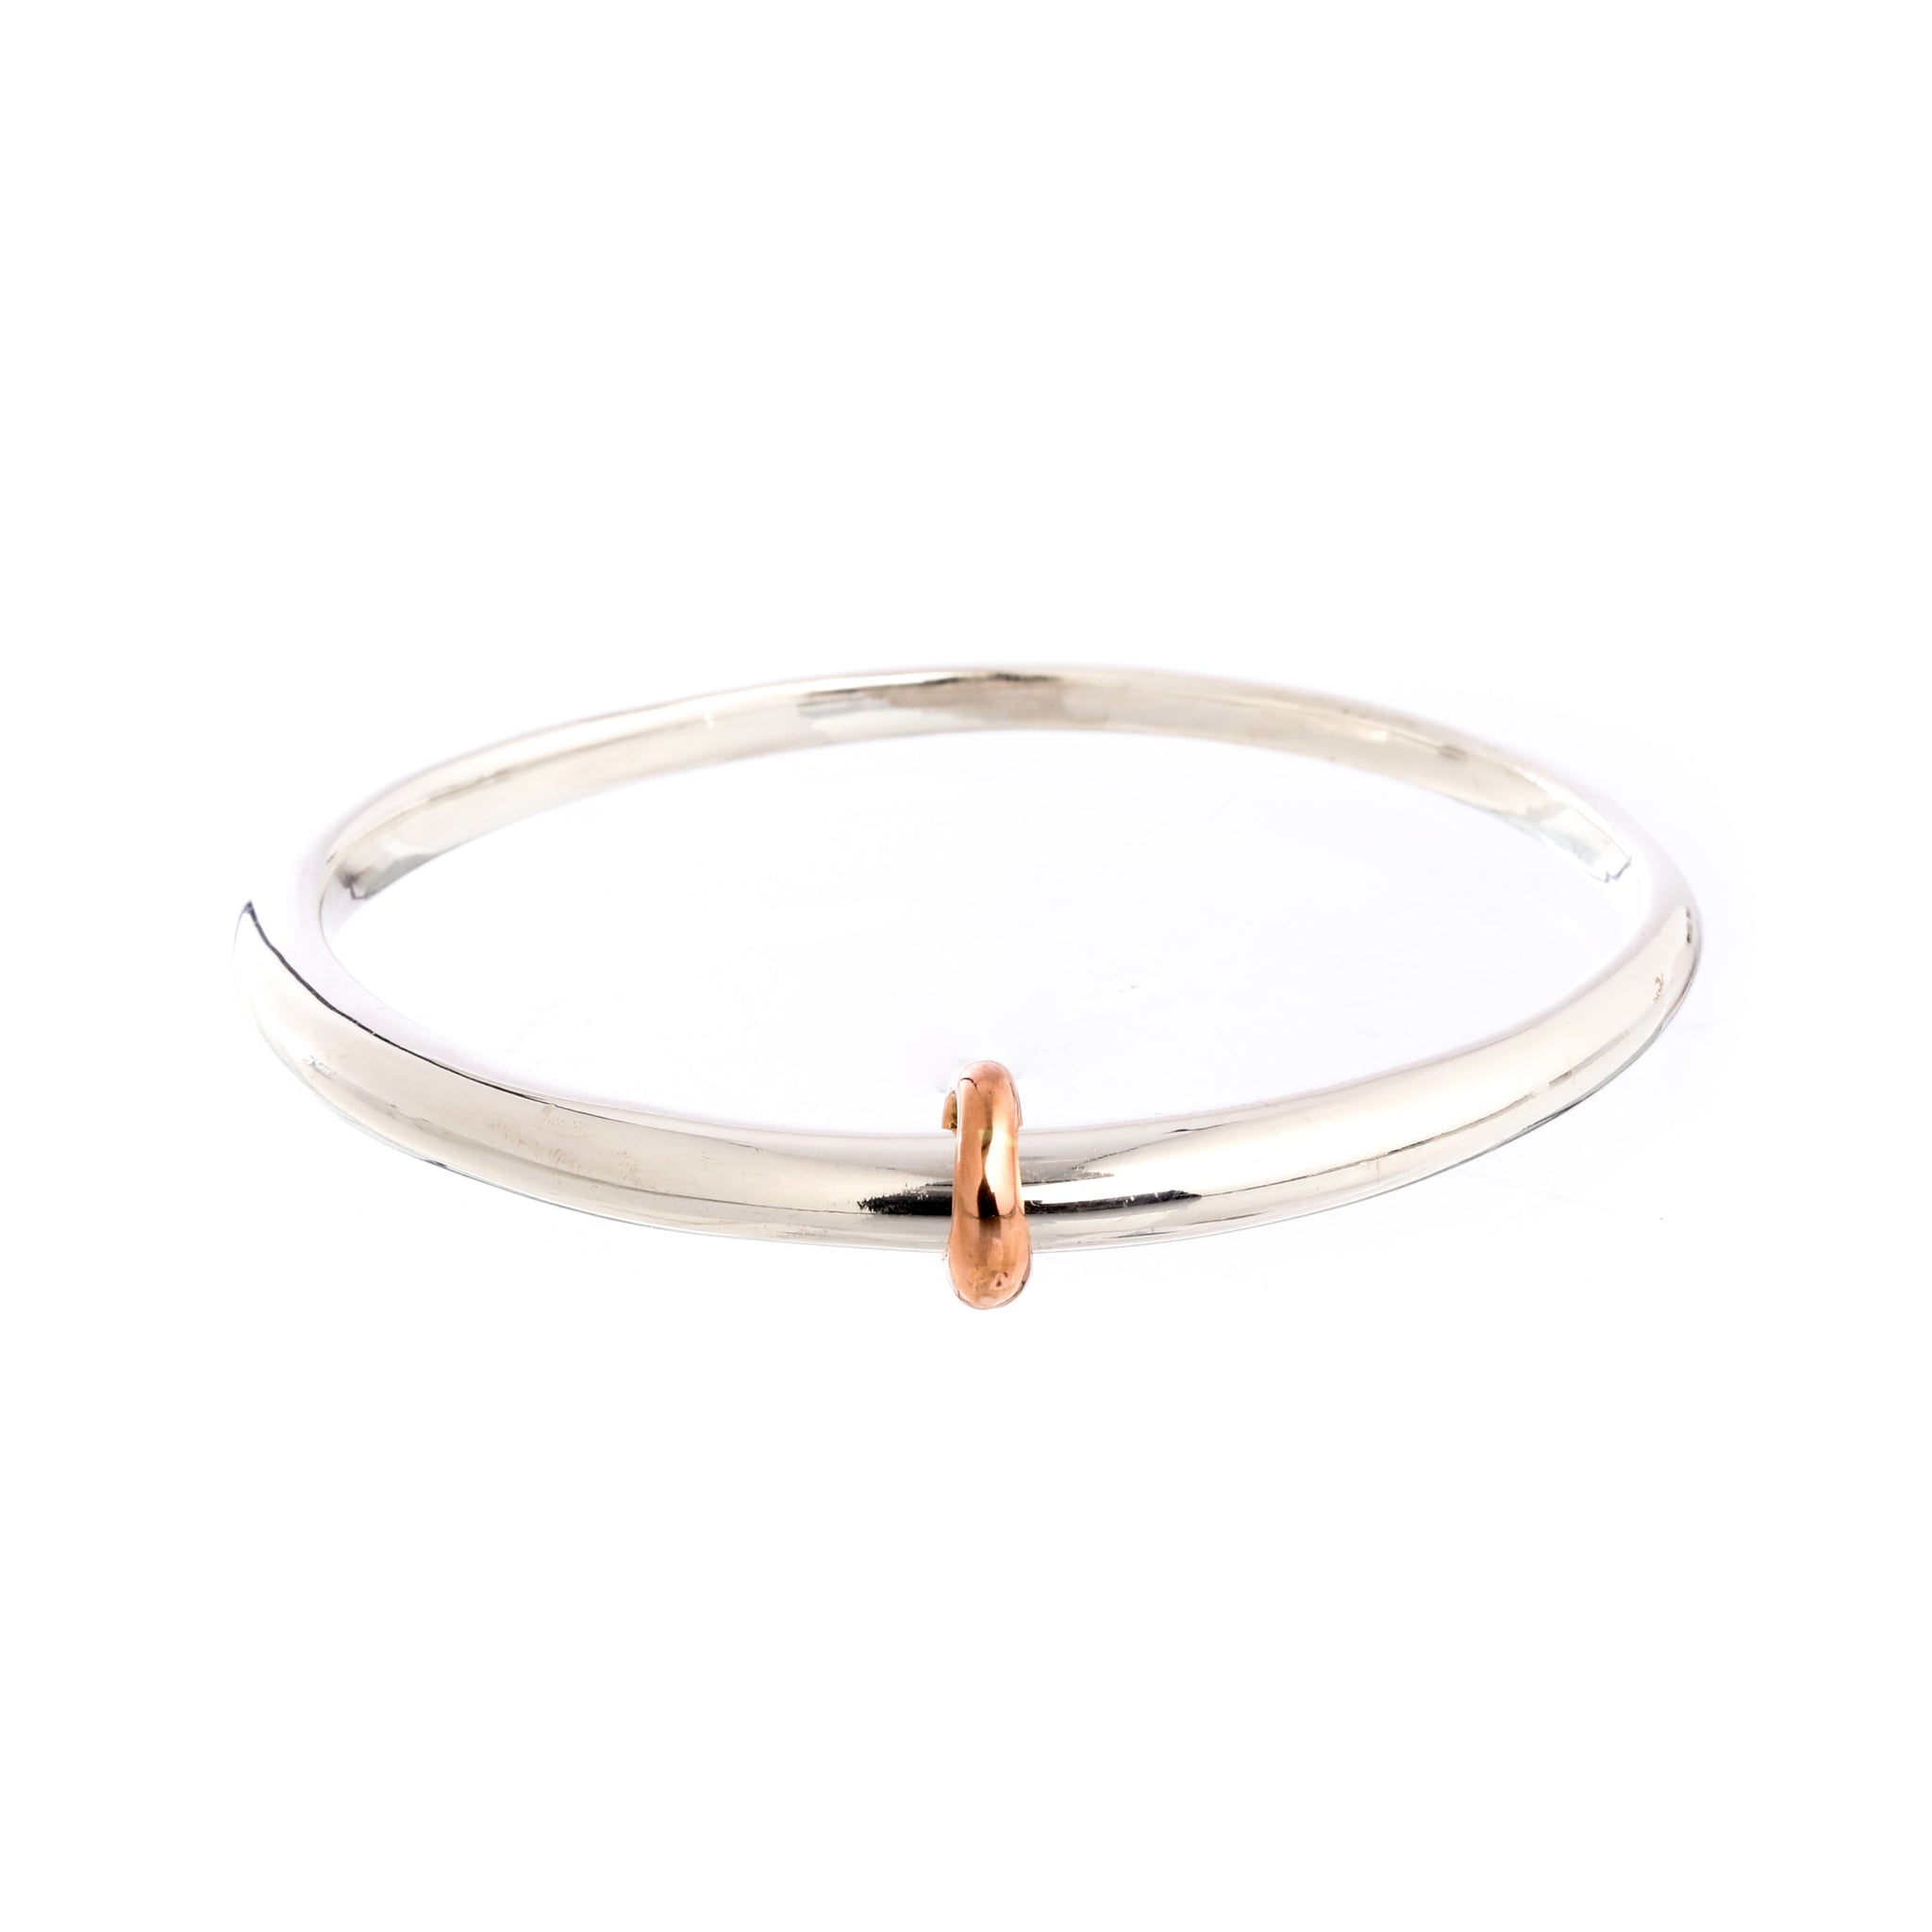 Eclipse Silver Oval Bangle With Gold Loop